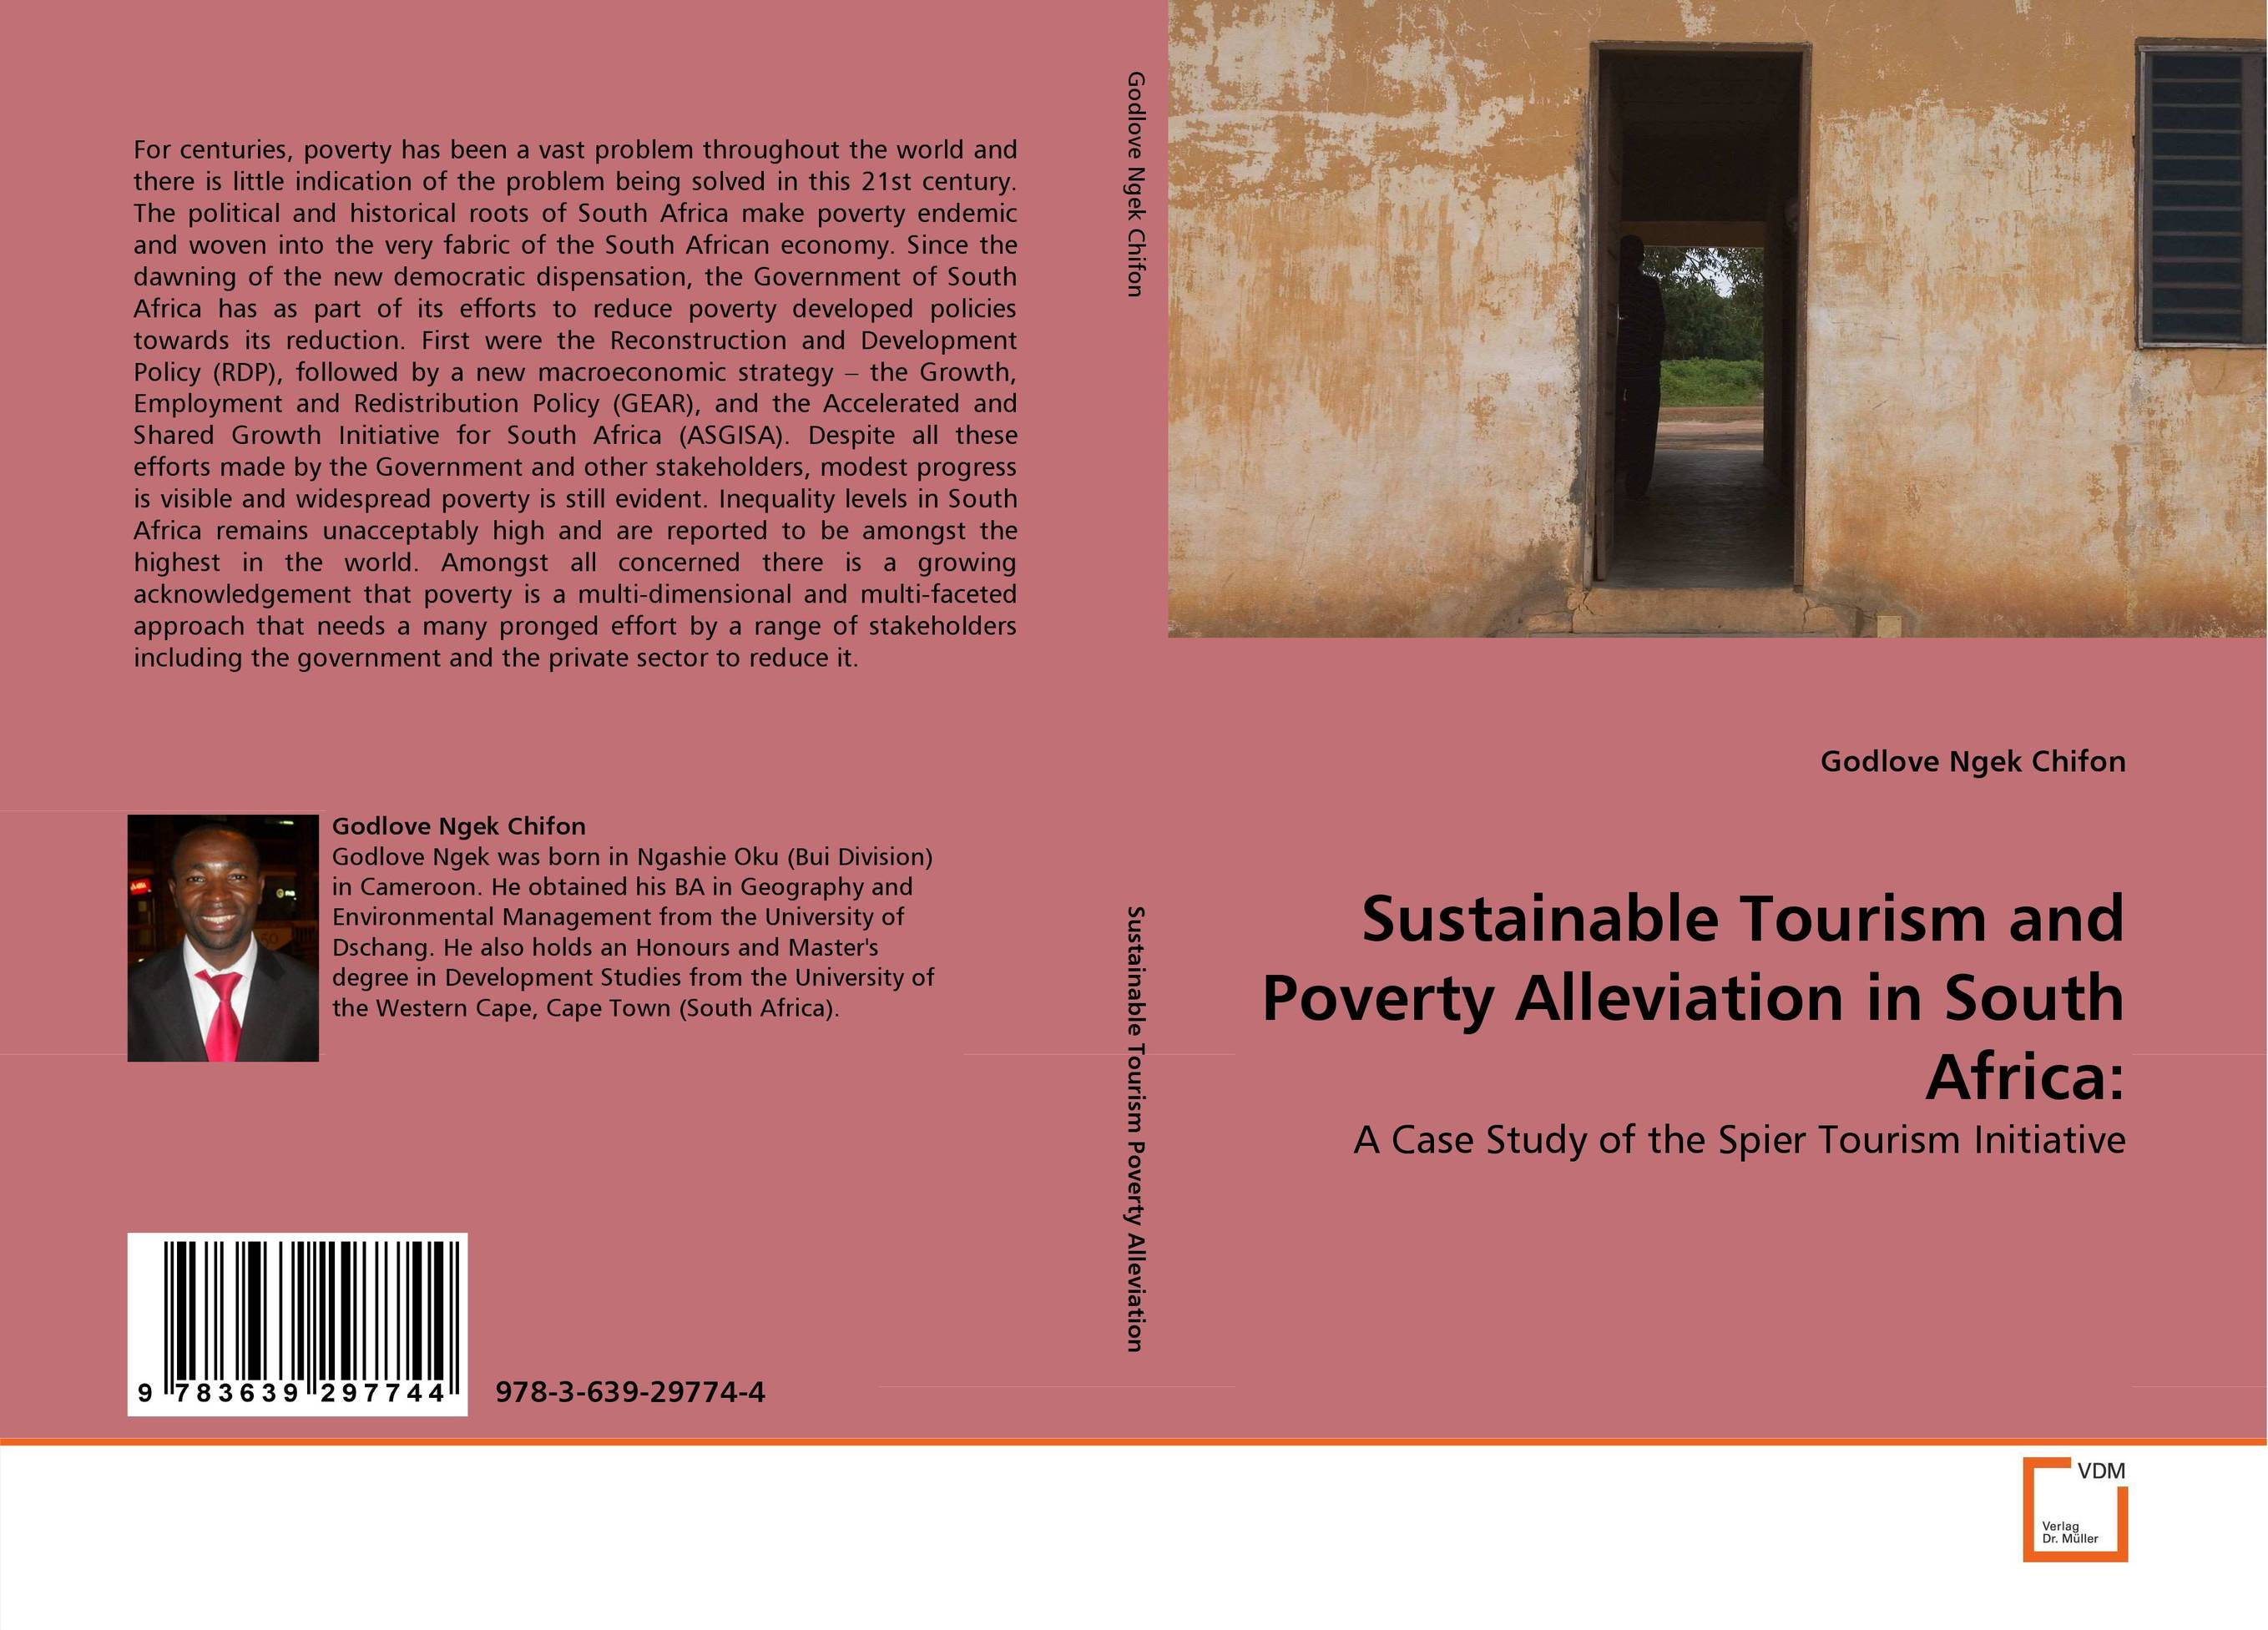 Sustainable Tourism and Poverty Alleviation in South Africa: south african mnes in africa